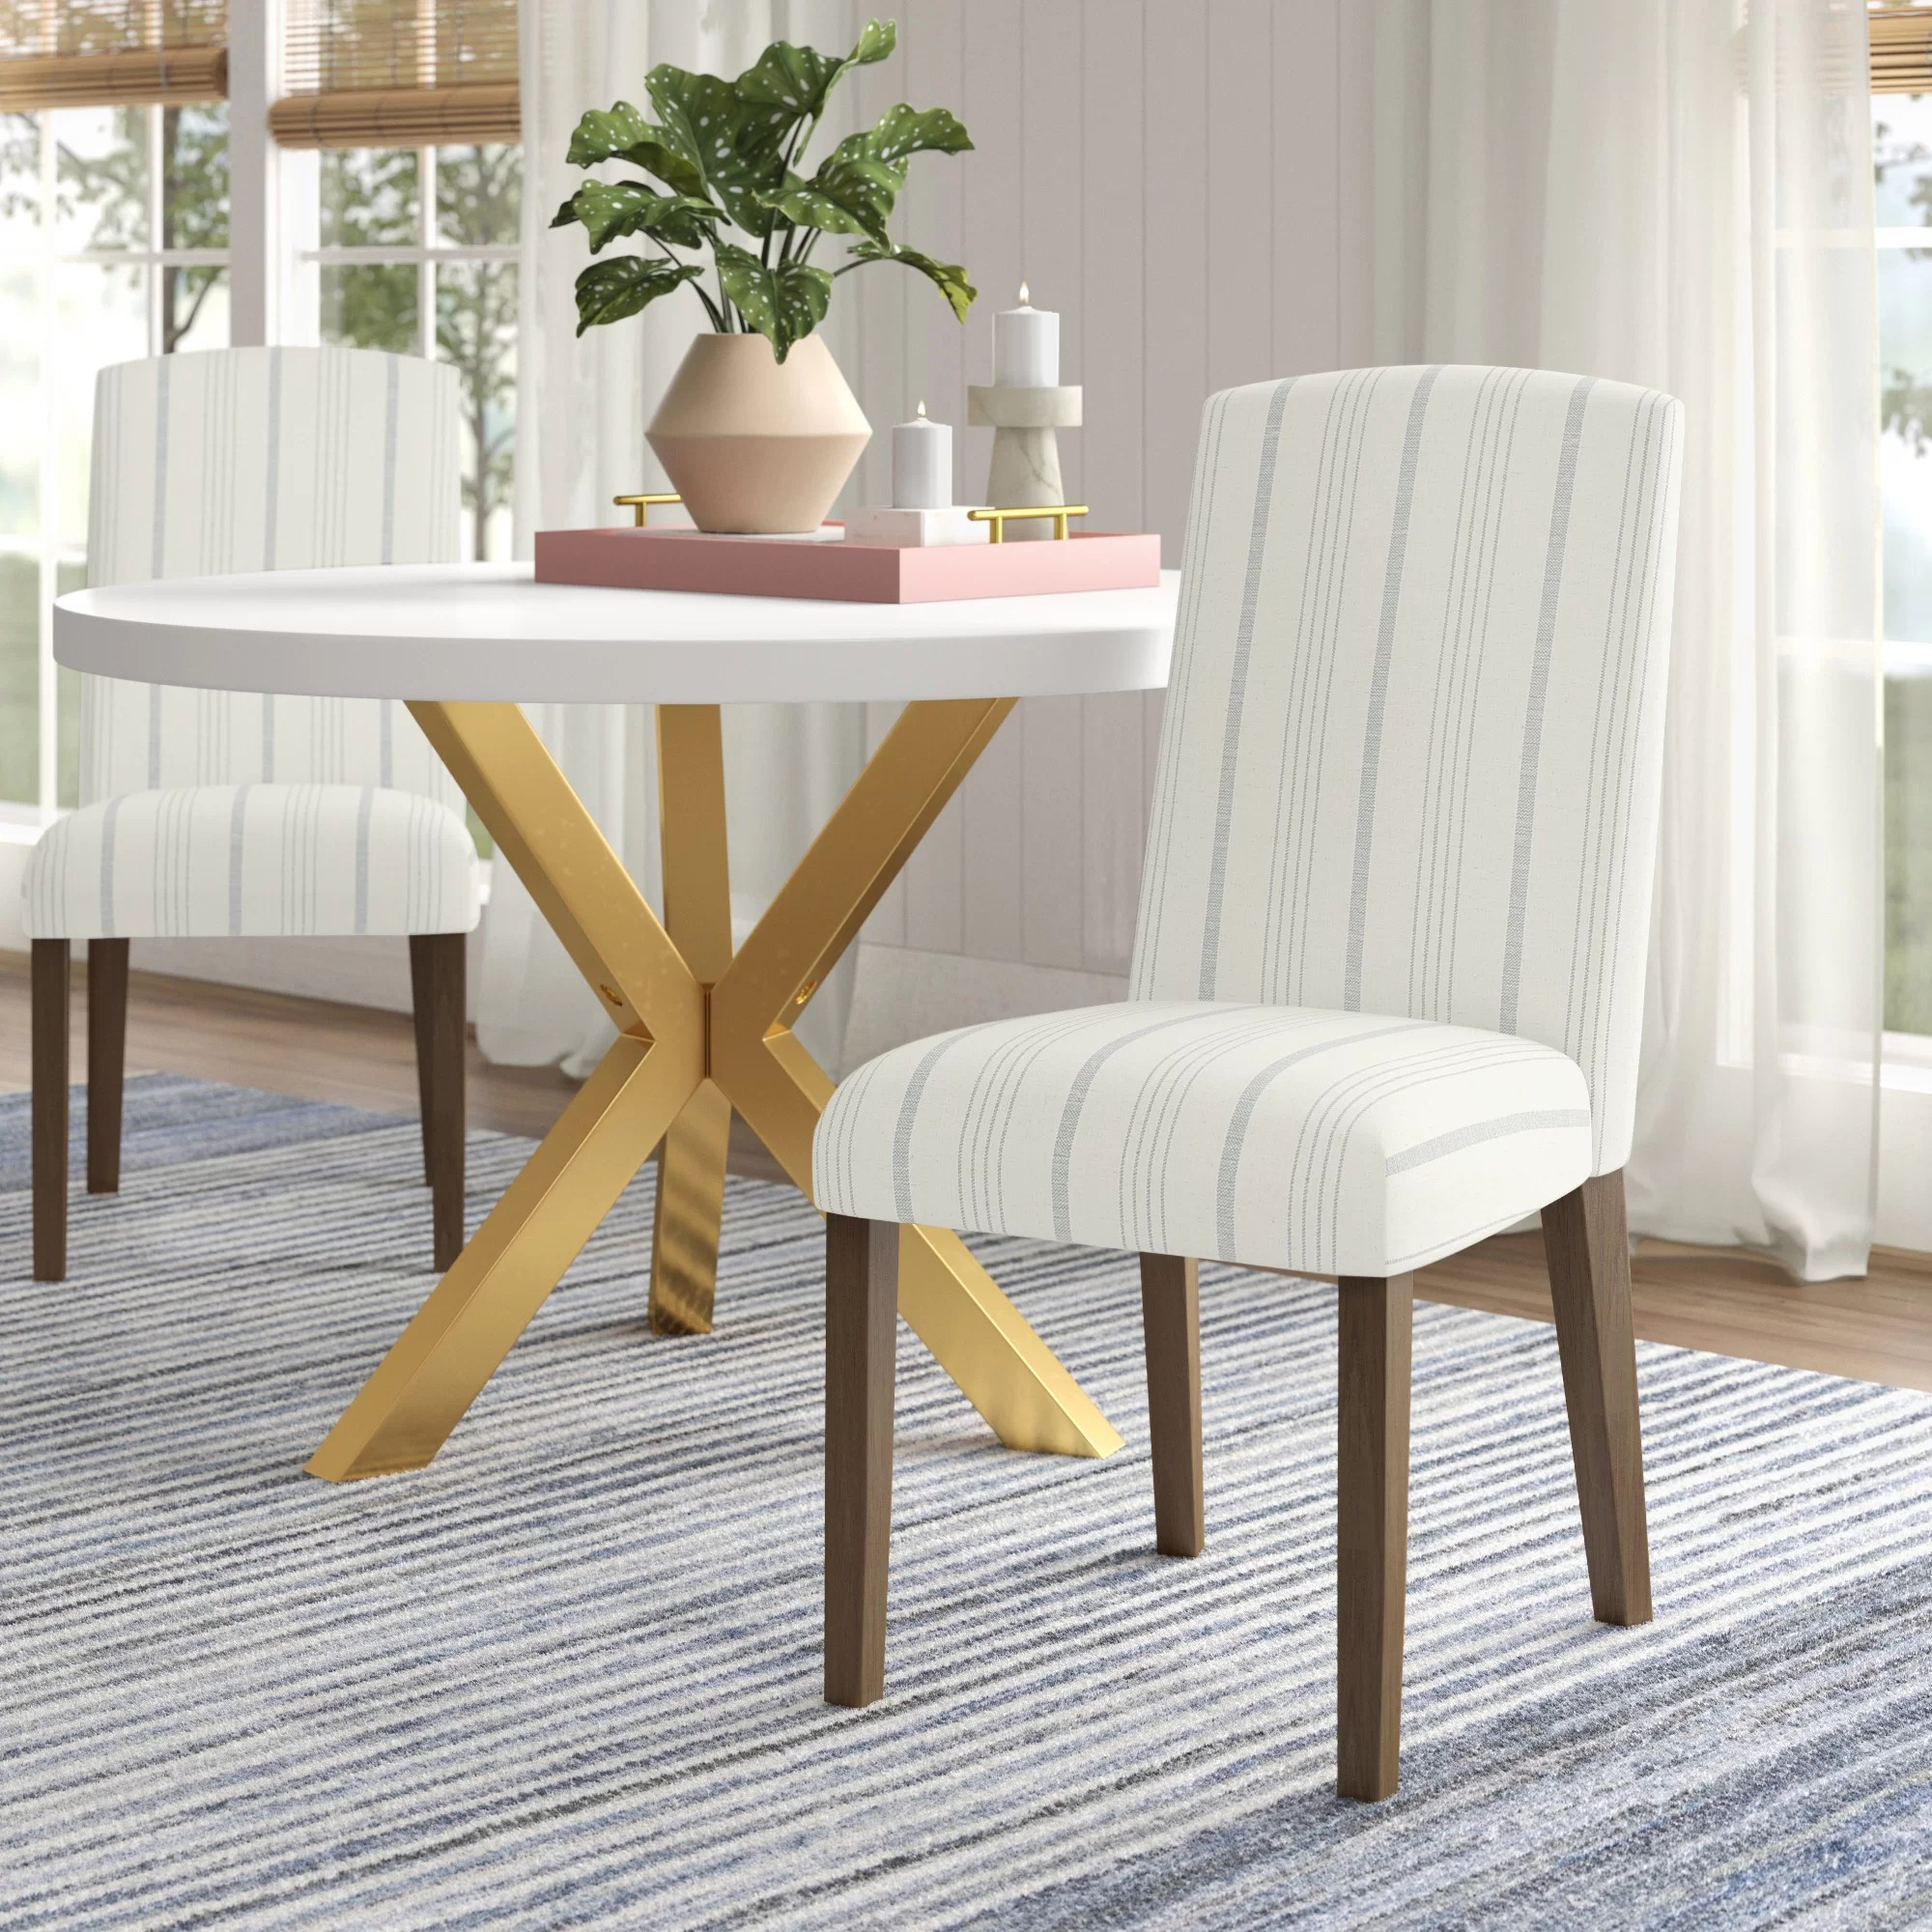 bob upholstered dining chair